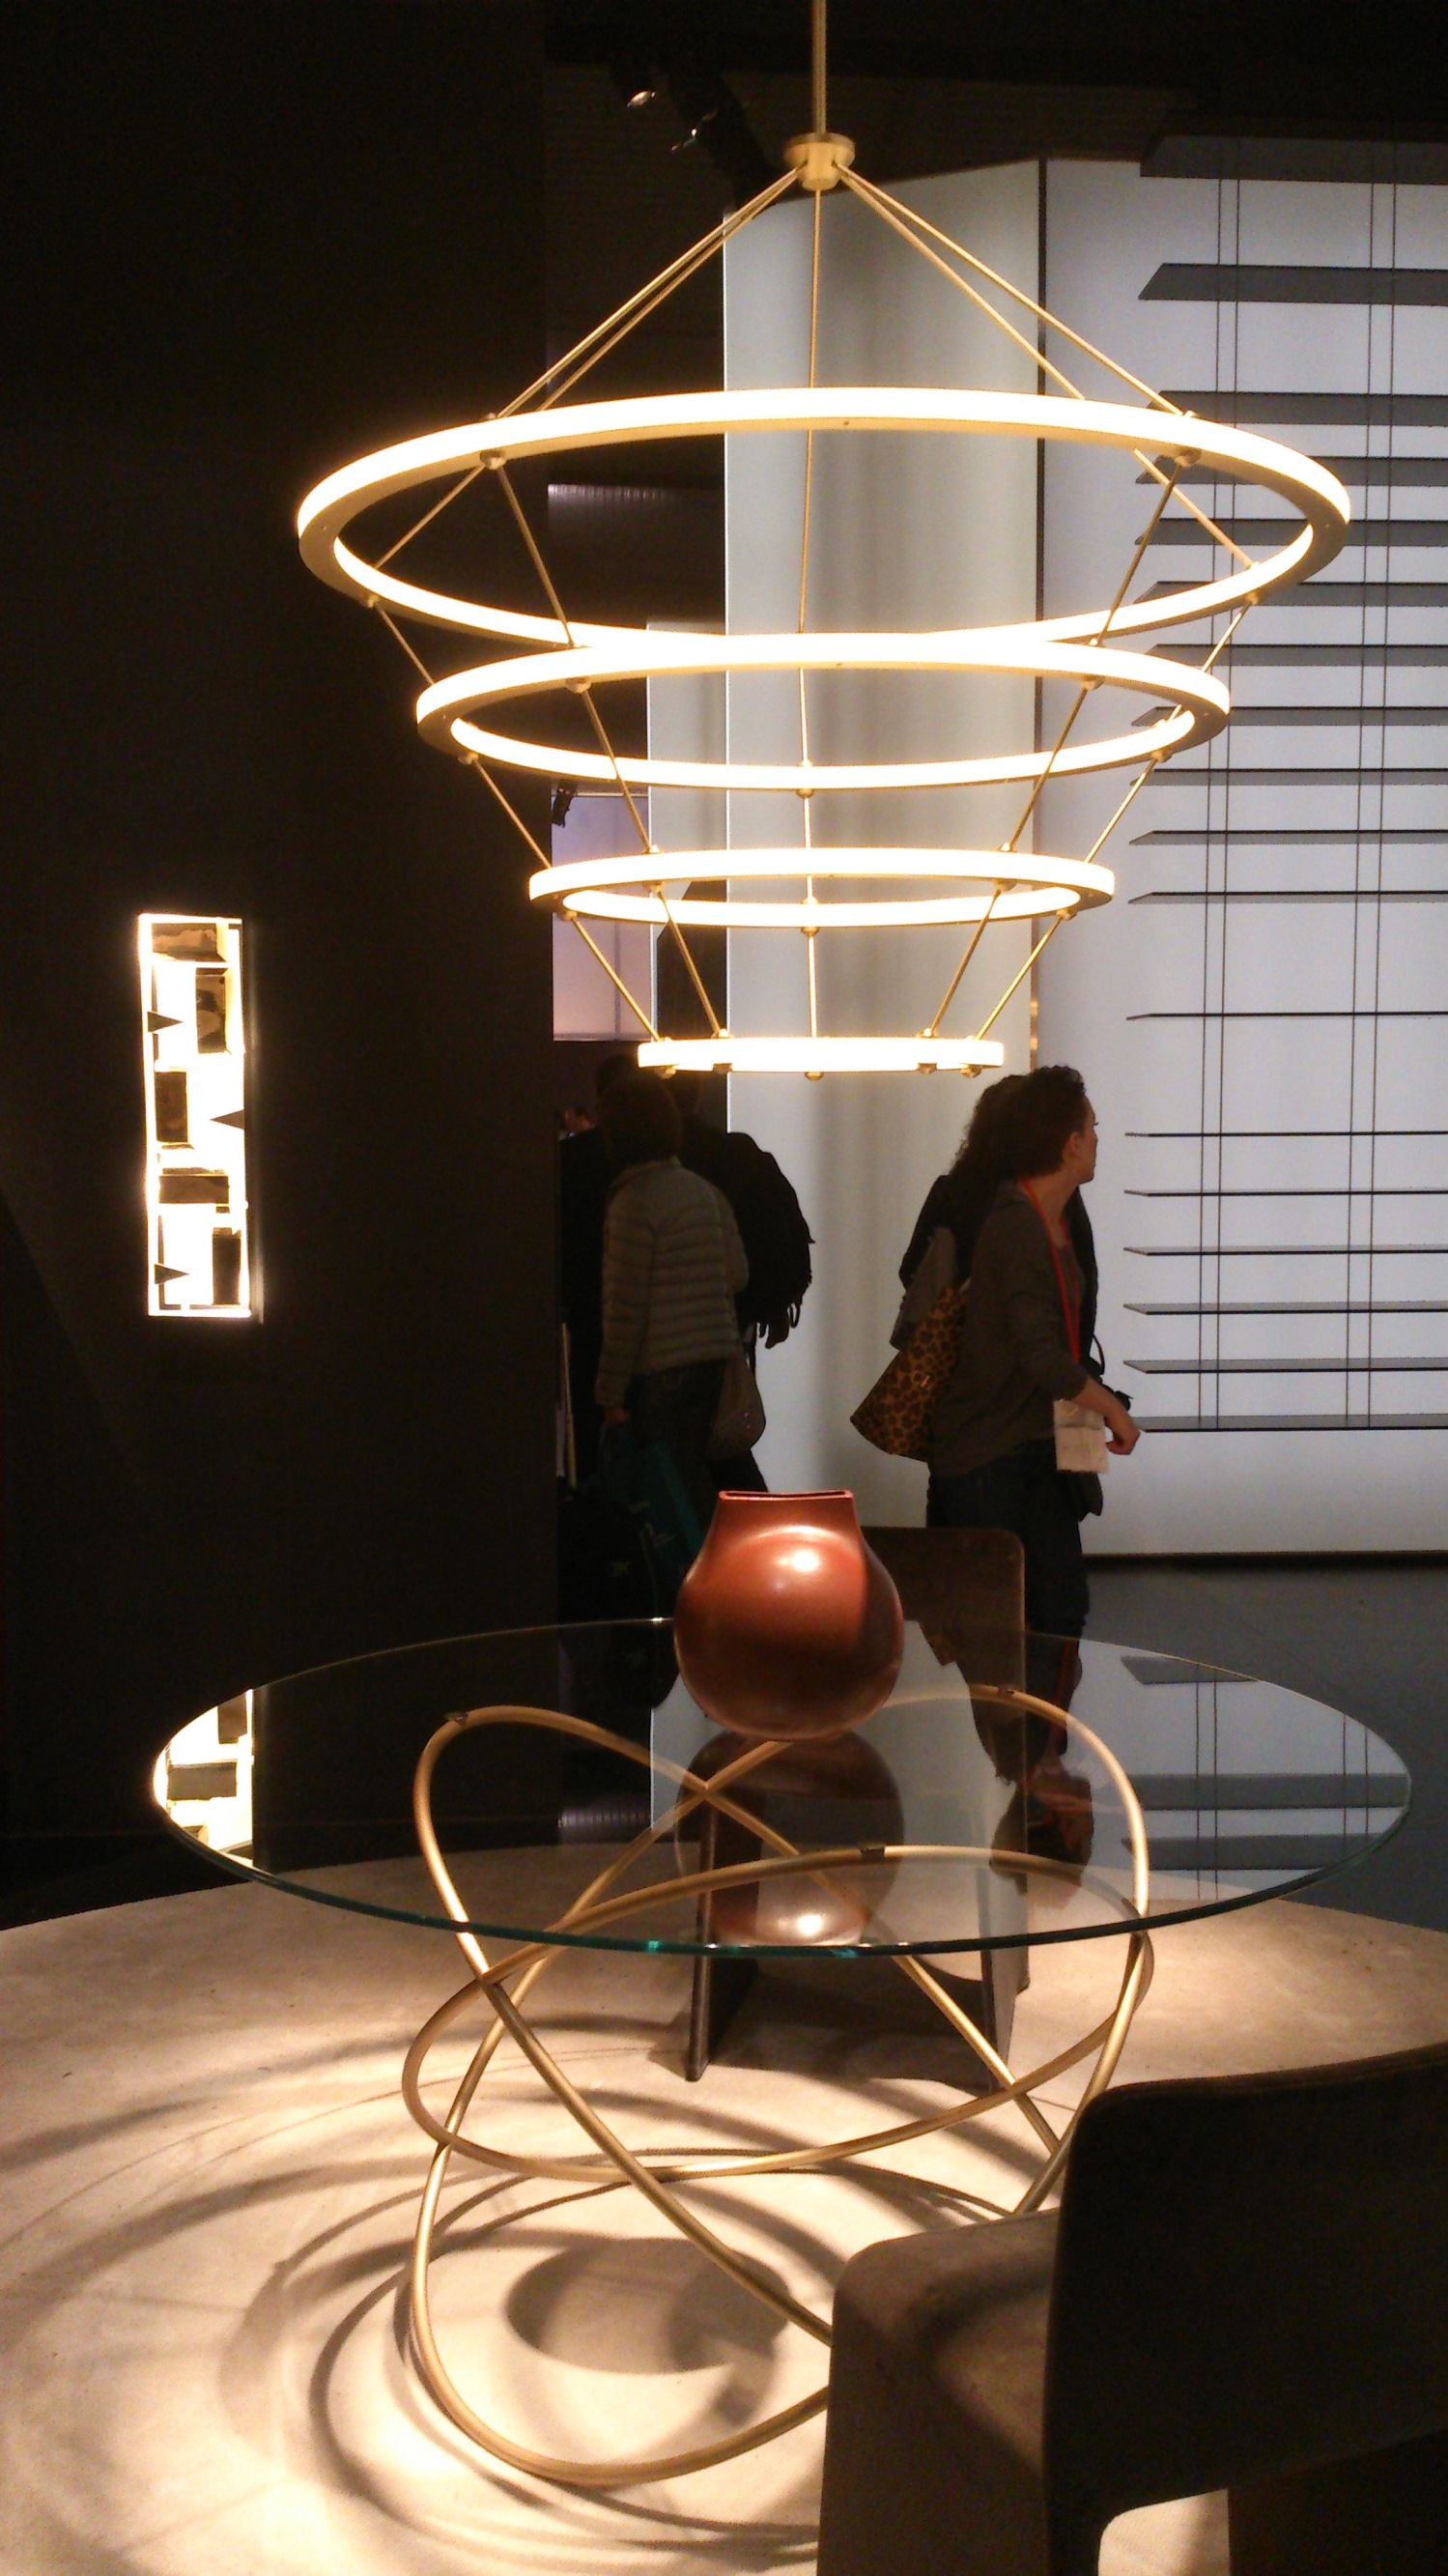 5 molteni isaloni salone del mobile 2015 milan targi meblowe w mediolanie interior furniture light fixtures design tendencies trends review